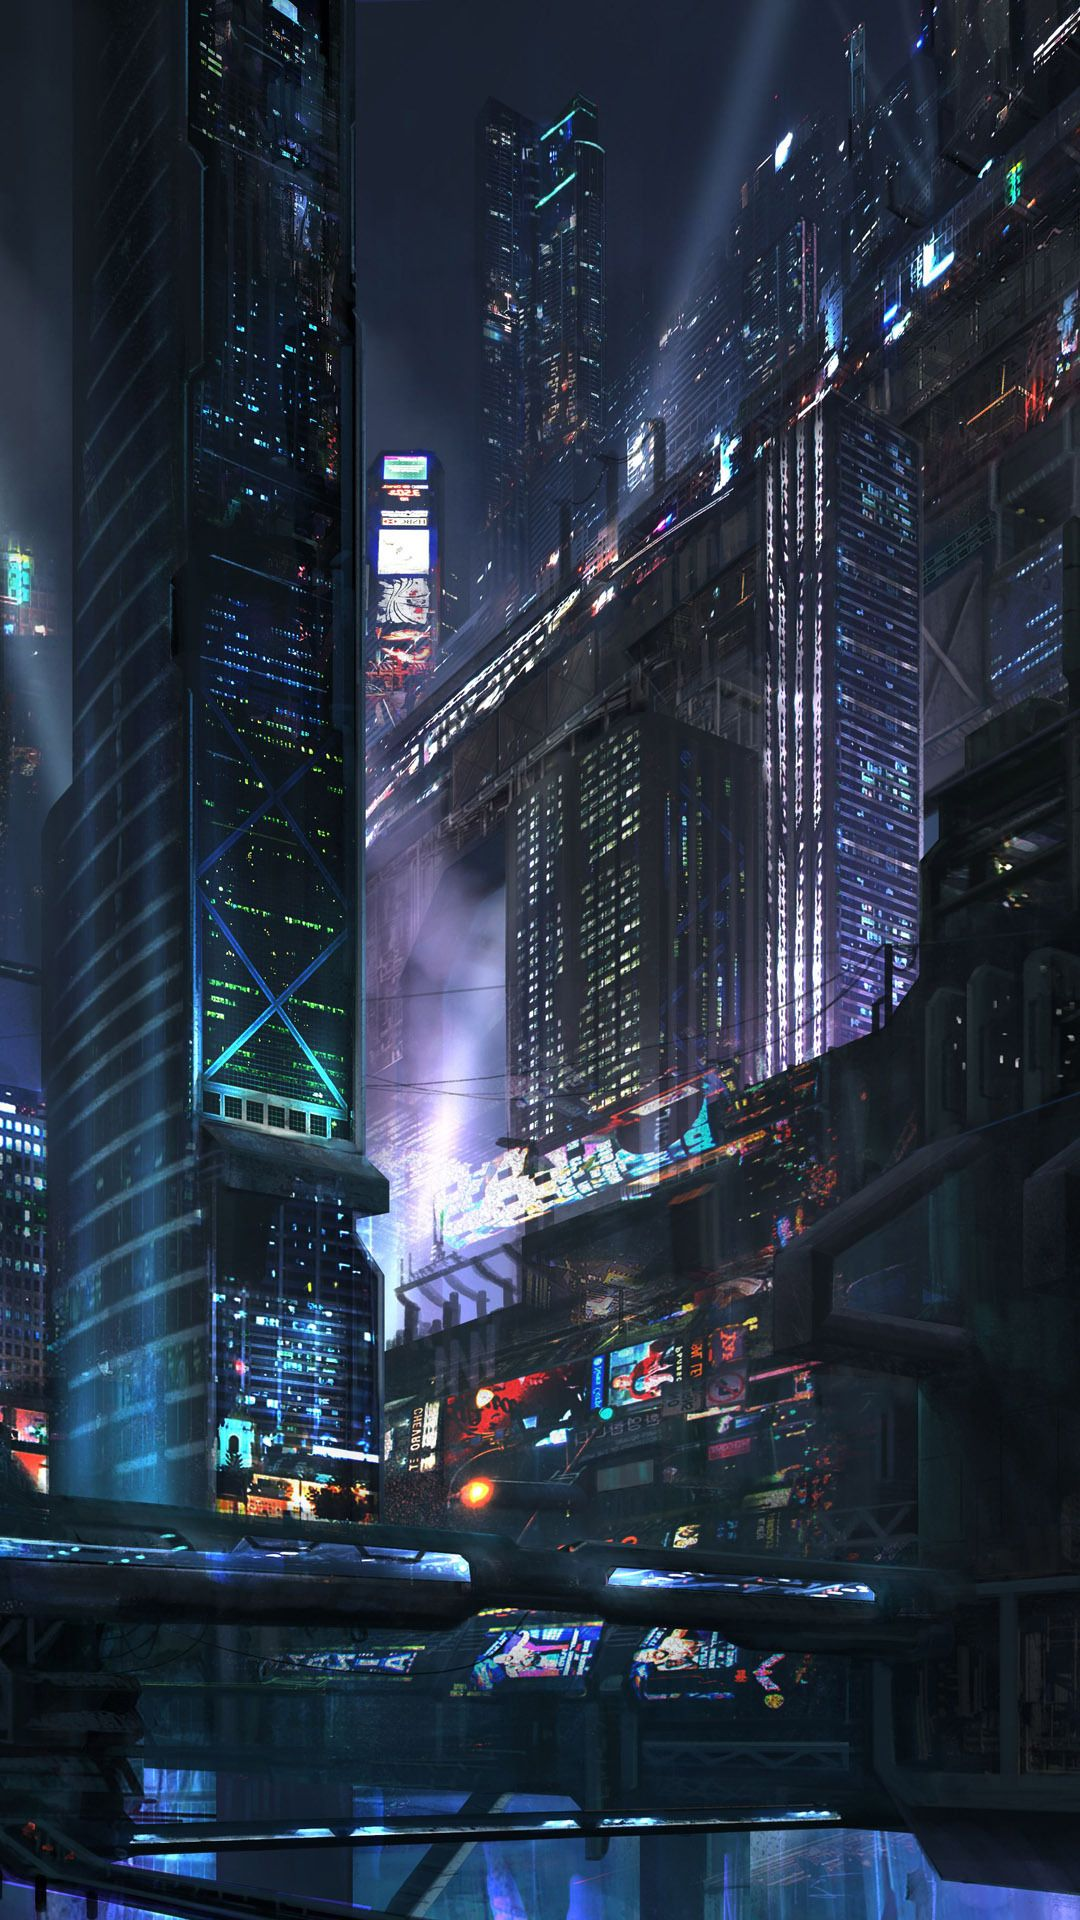 Cool Jay S Wallpaper Emporium Vol 1 Futuristic City Cyberpunk City Futuristic Art